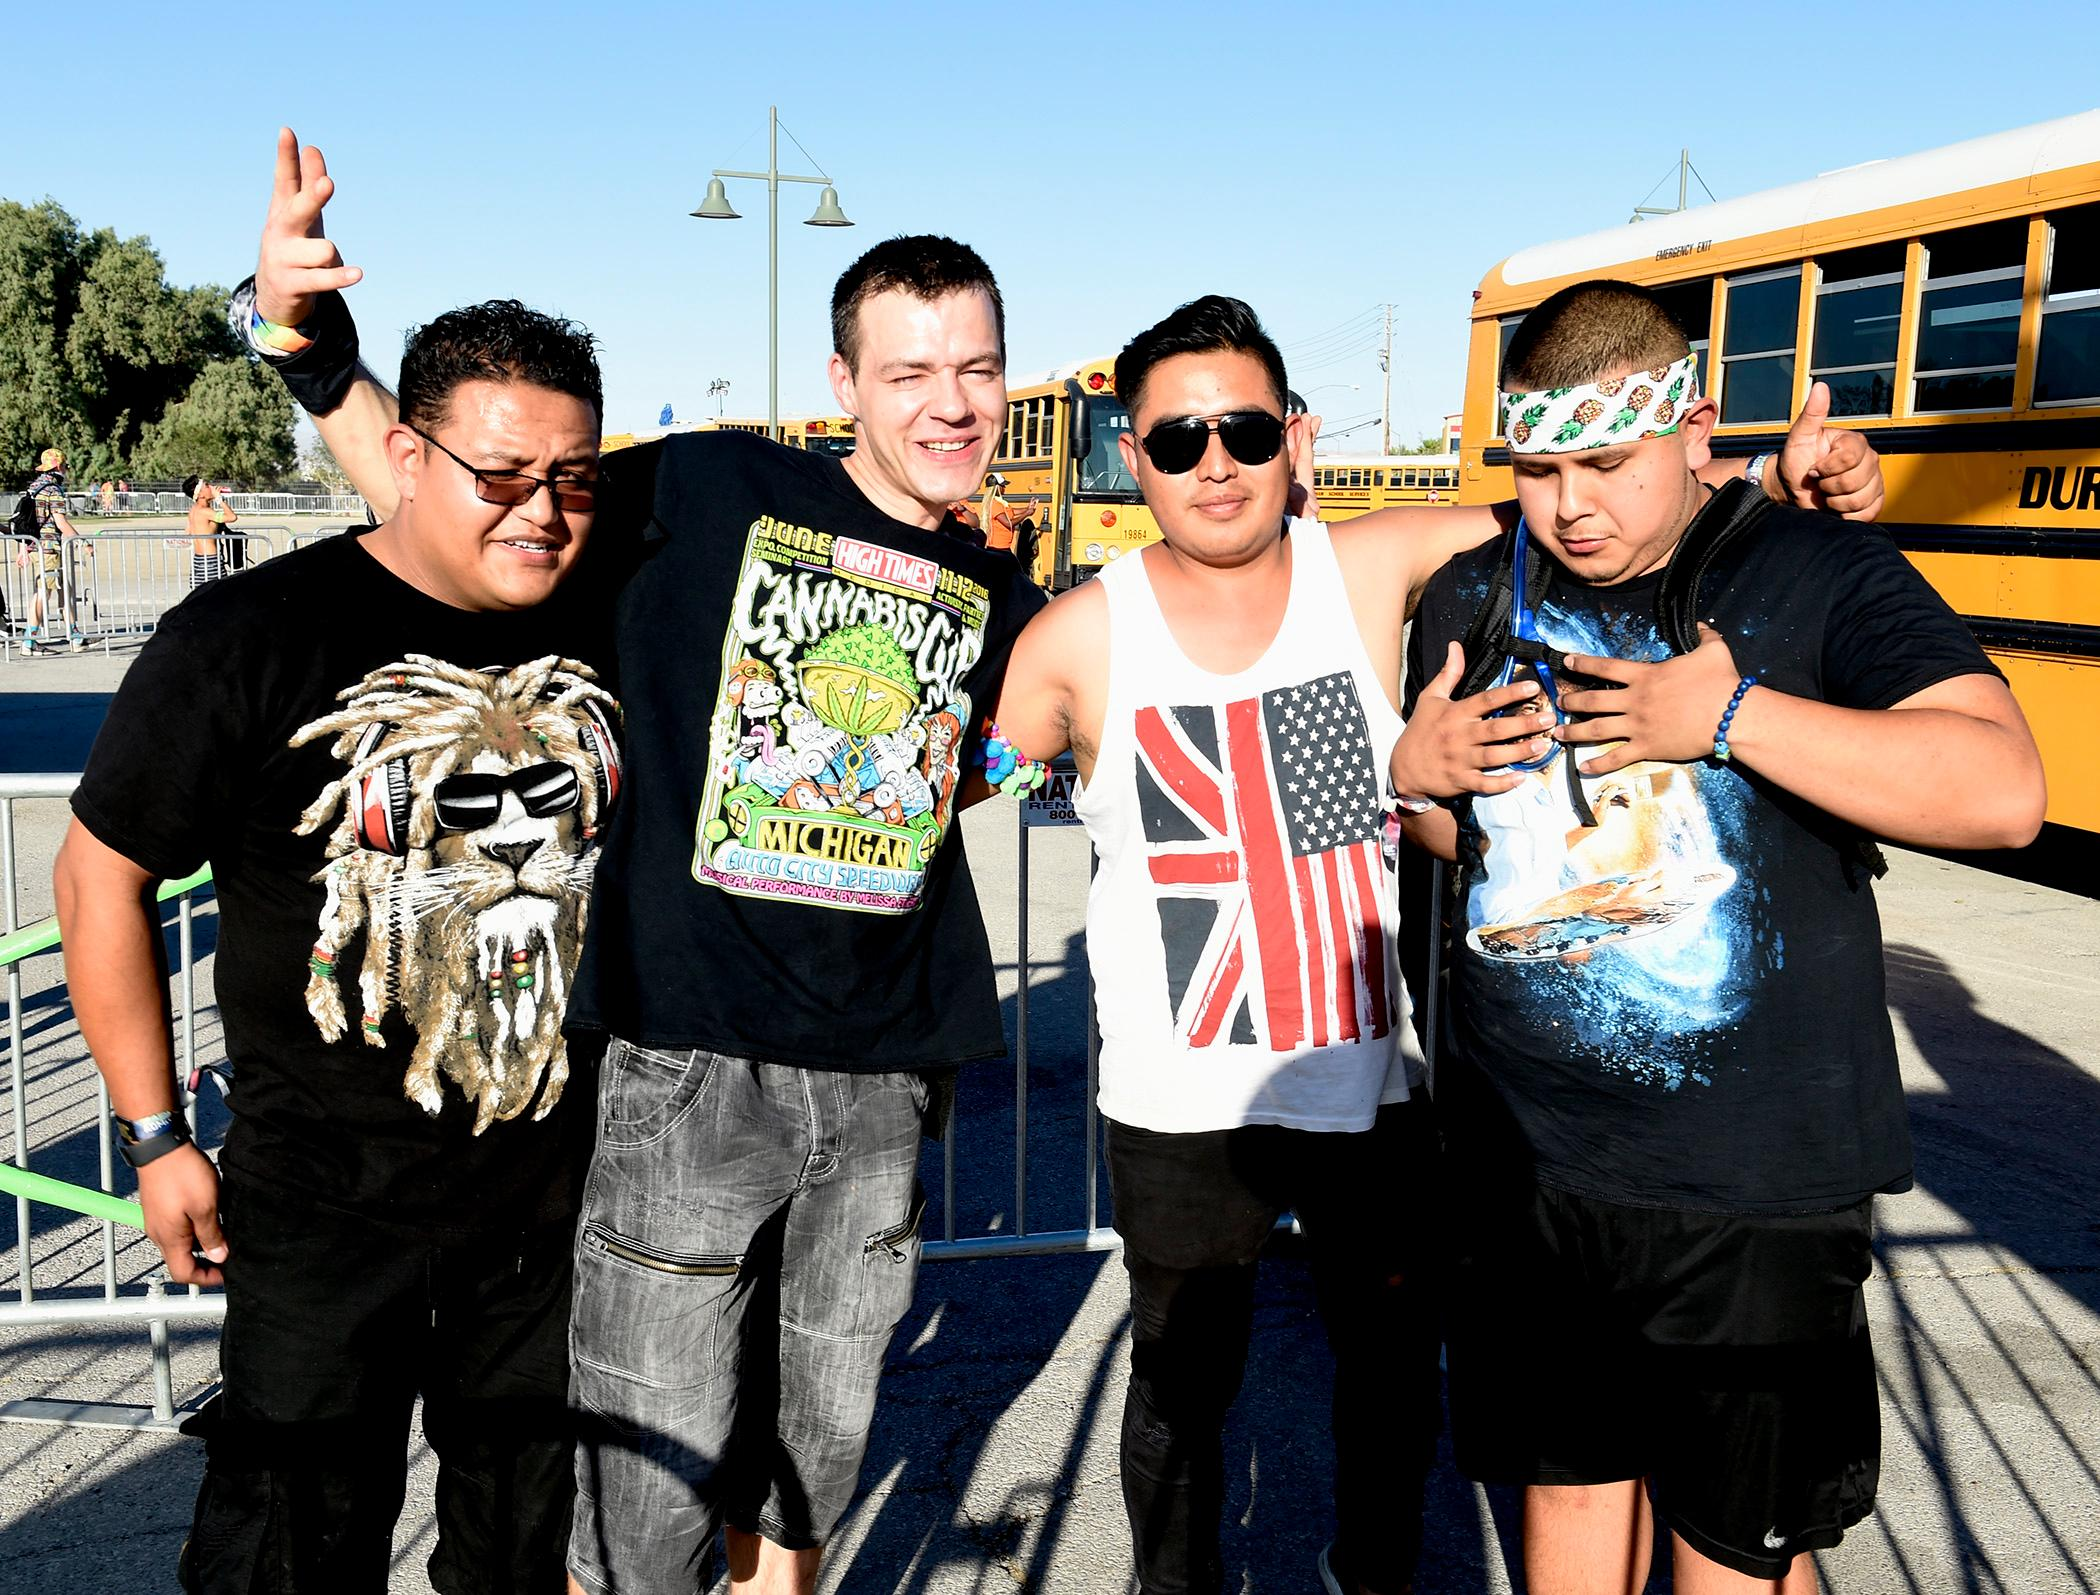 Electric Daisy Carnival fans waiting for the new FREE Park & Ride shuttle buses from Craig Ranch Park to Day 2 of the EDC event at the  Las Vegas Motor Speedway. Saturday, June 17, 2017. (Glenn Pinkerton/Las Vegas News Bureau)